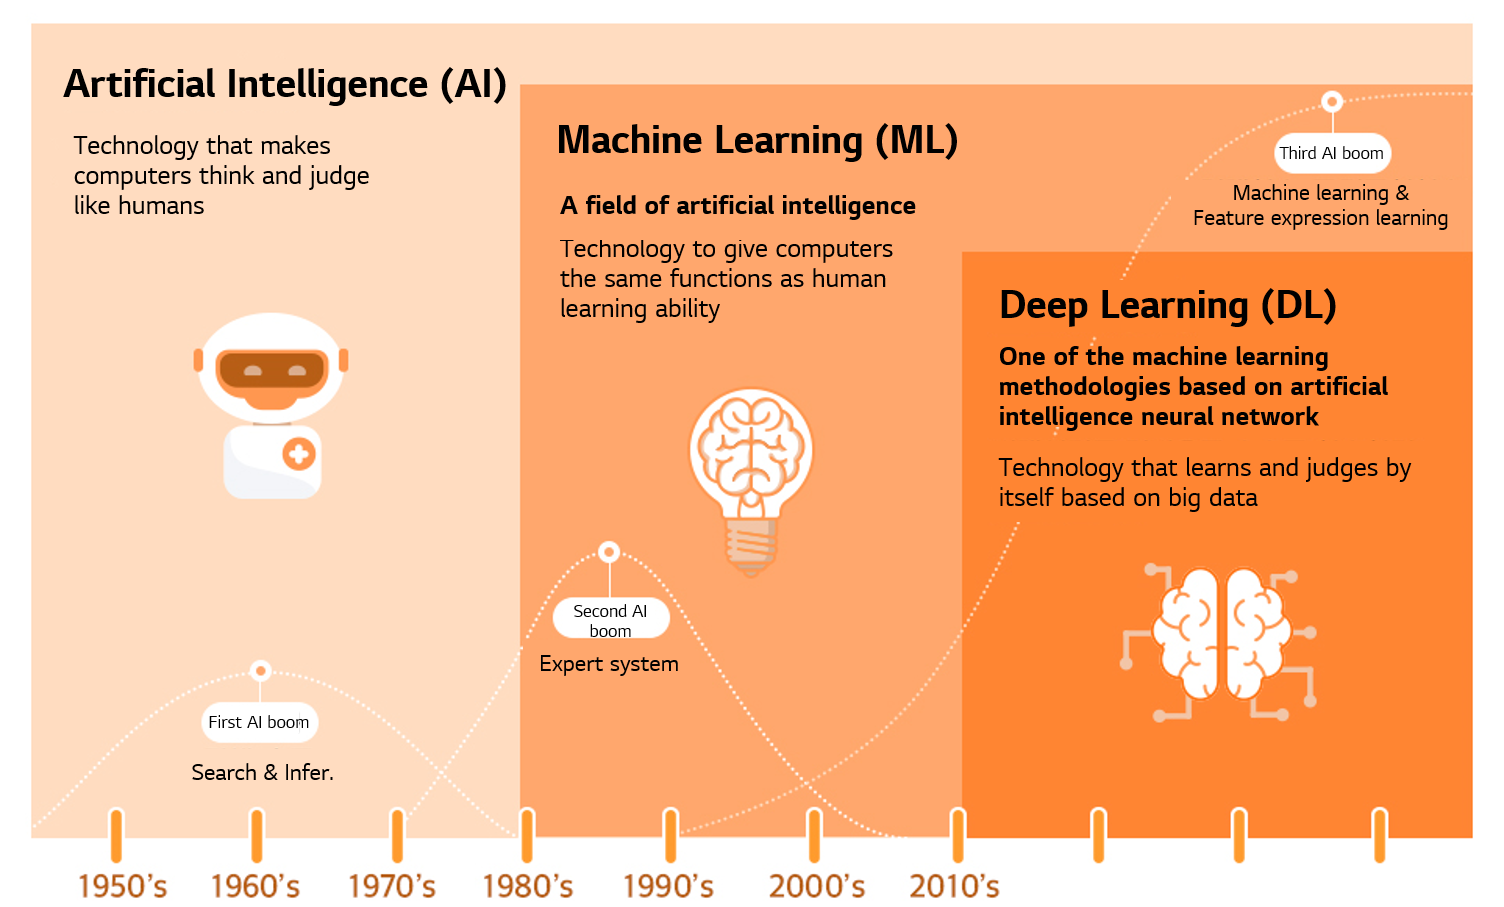 The relationship between these artificial intelligence technologies